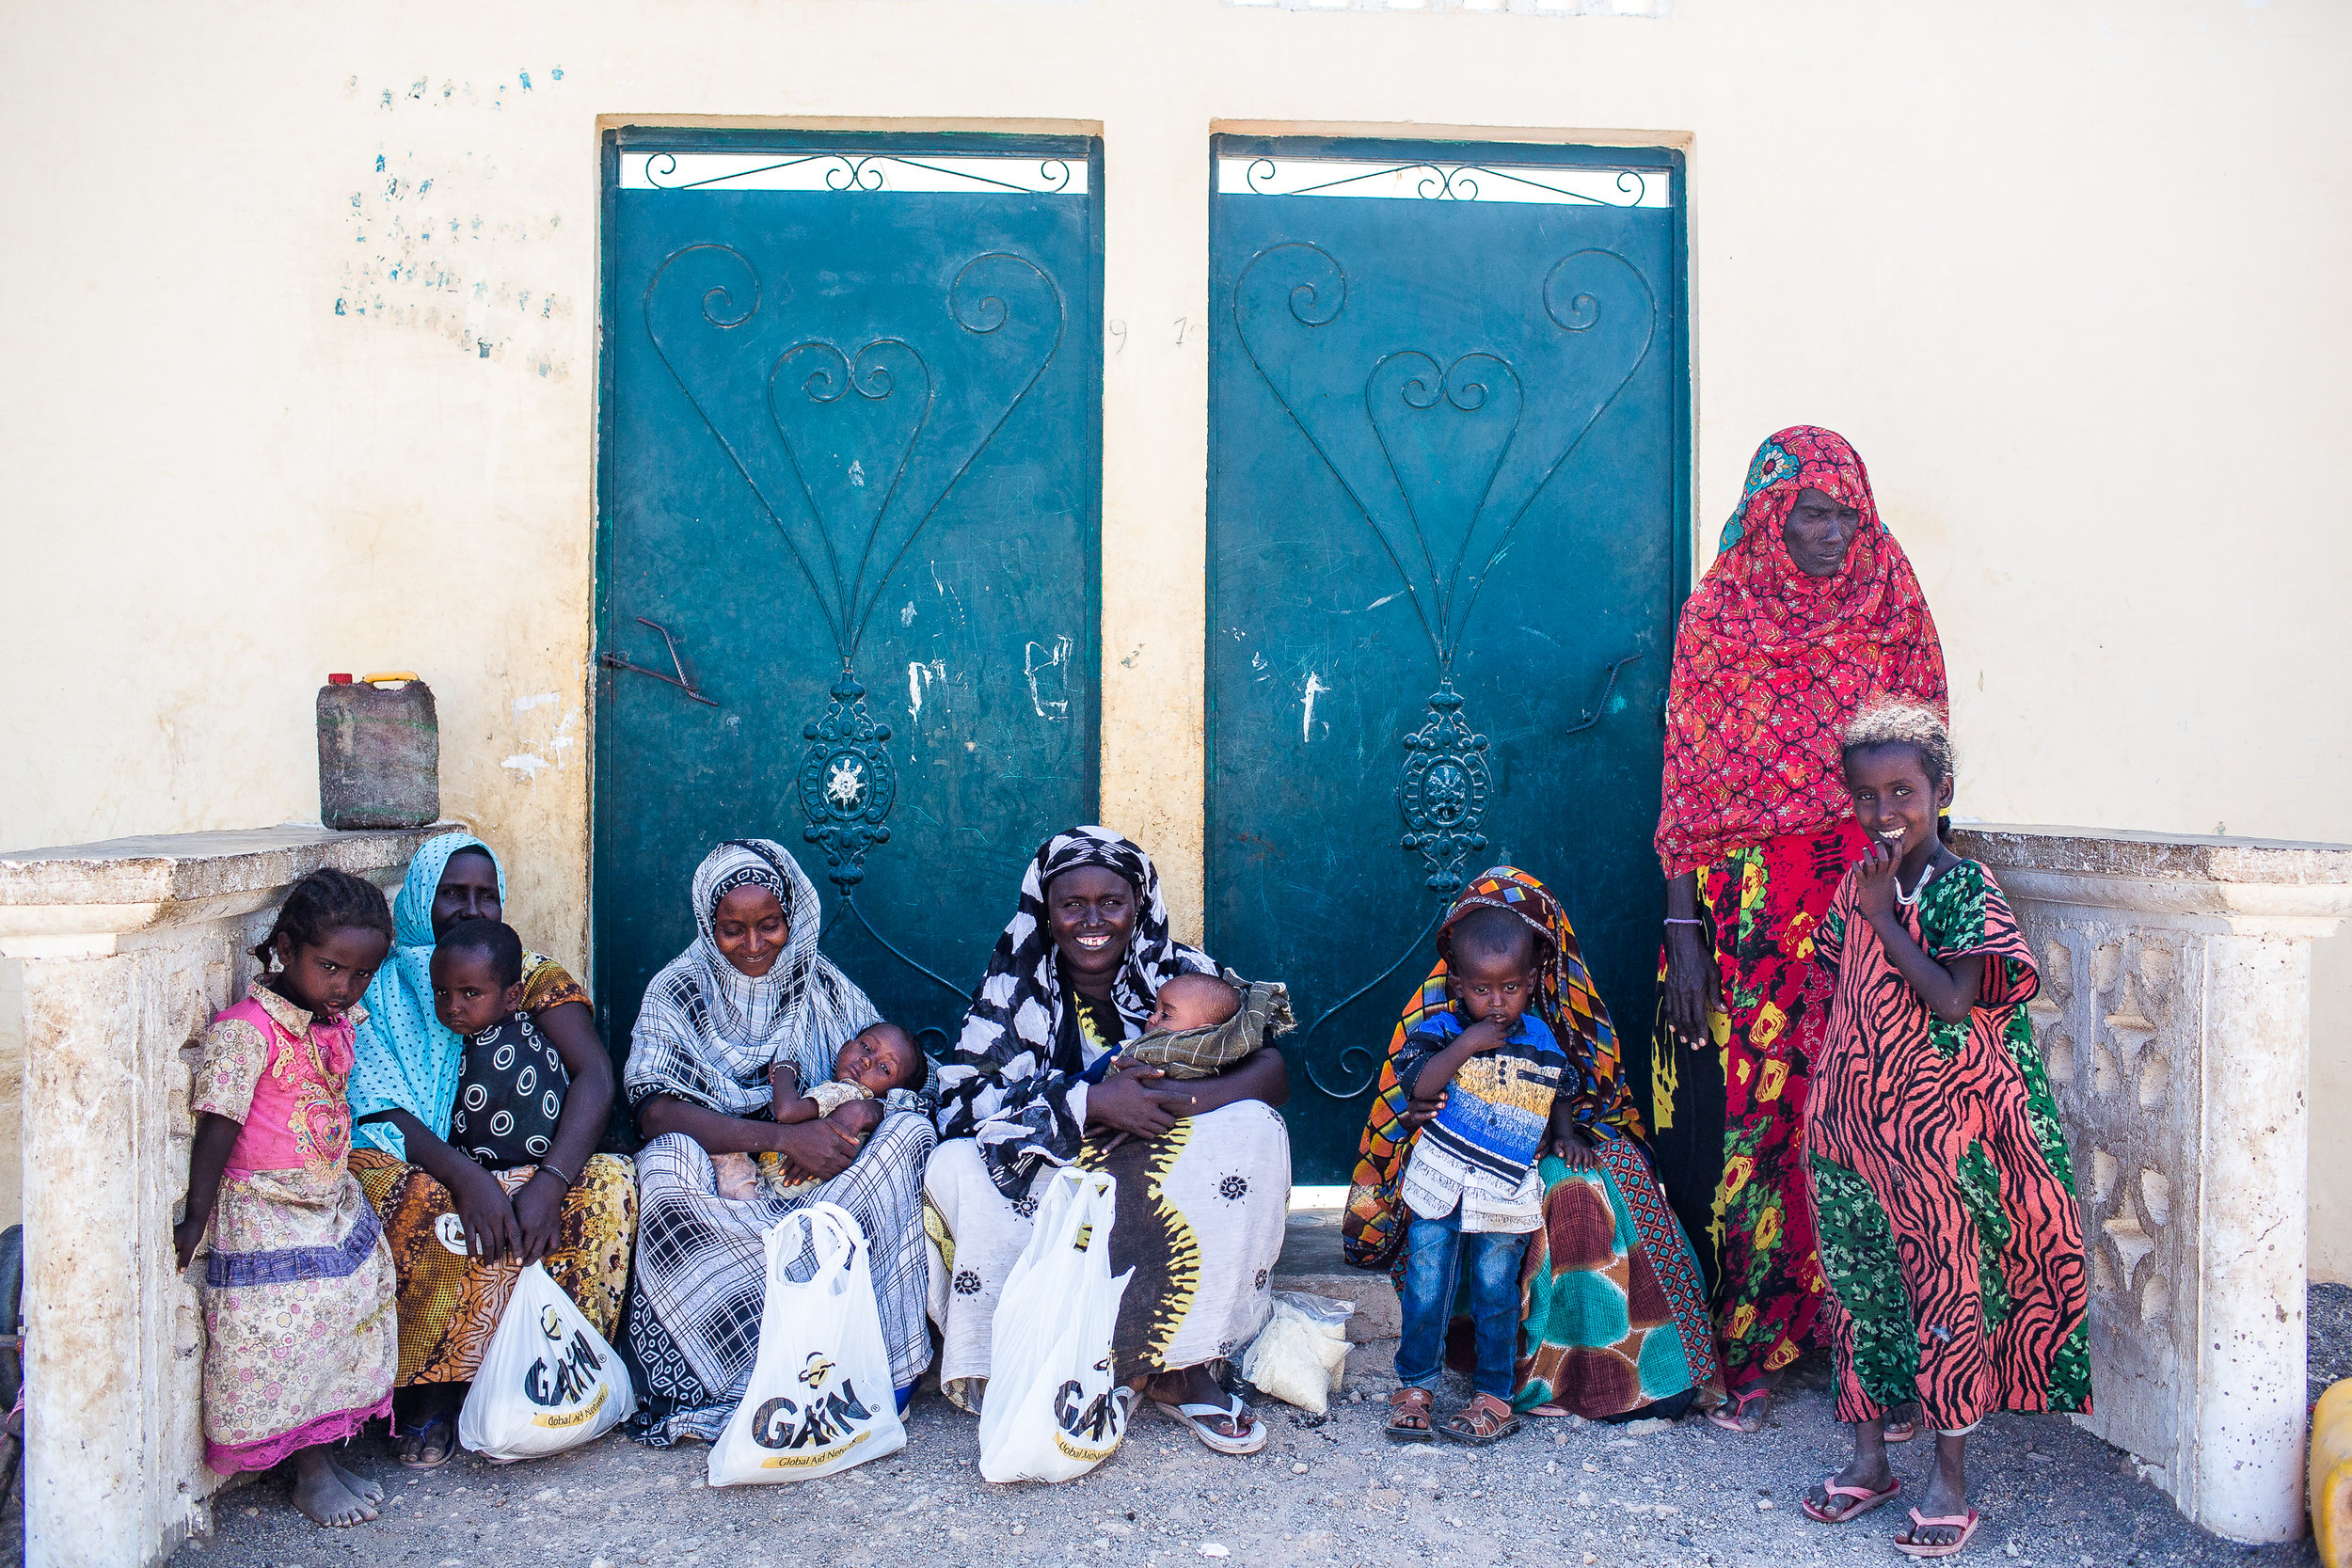 Some mothers and their children I met back in February at a distribution where we gave out food, clothing, and blankets. You can read their stories here:  Life in a Volcanic Desert